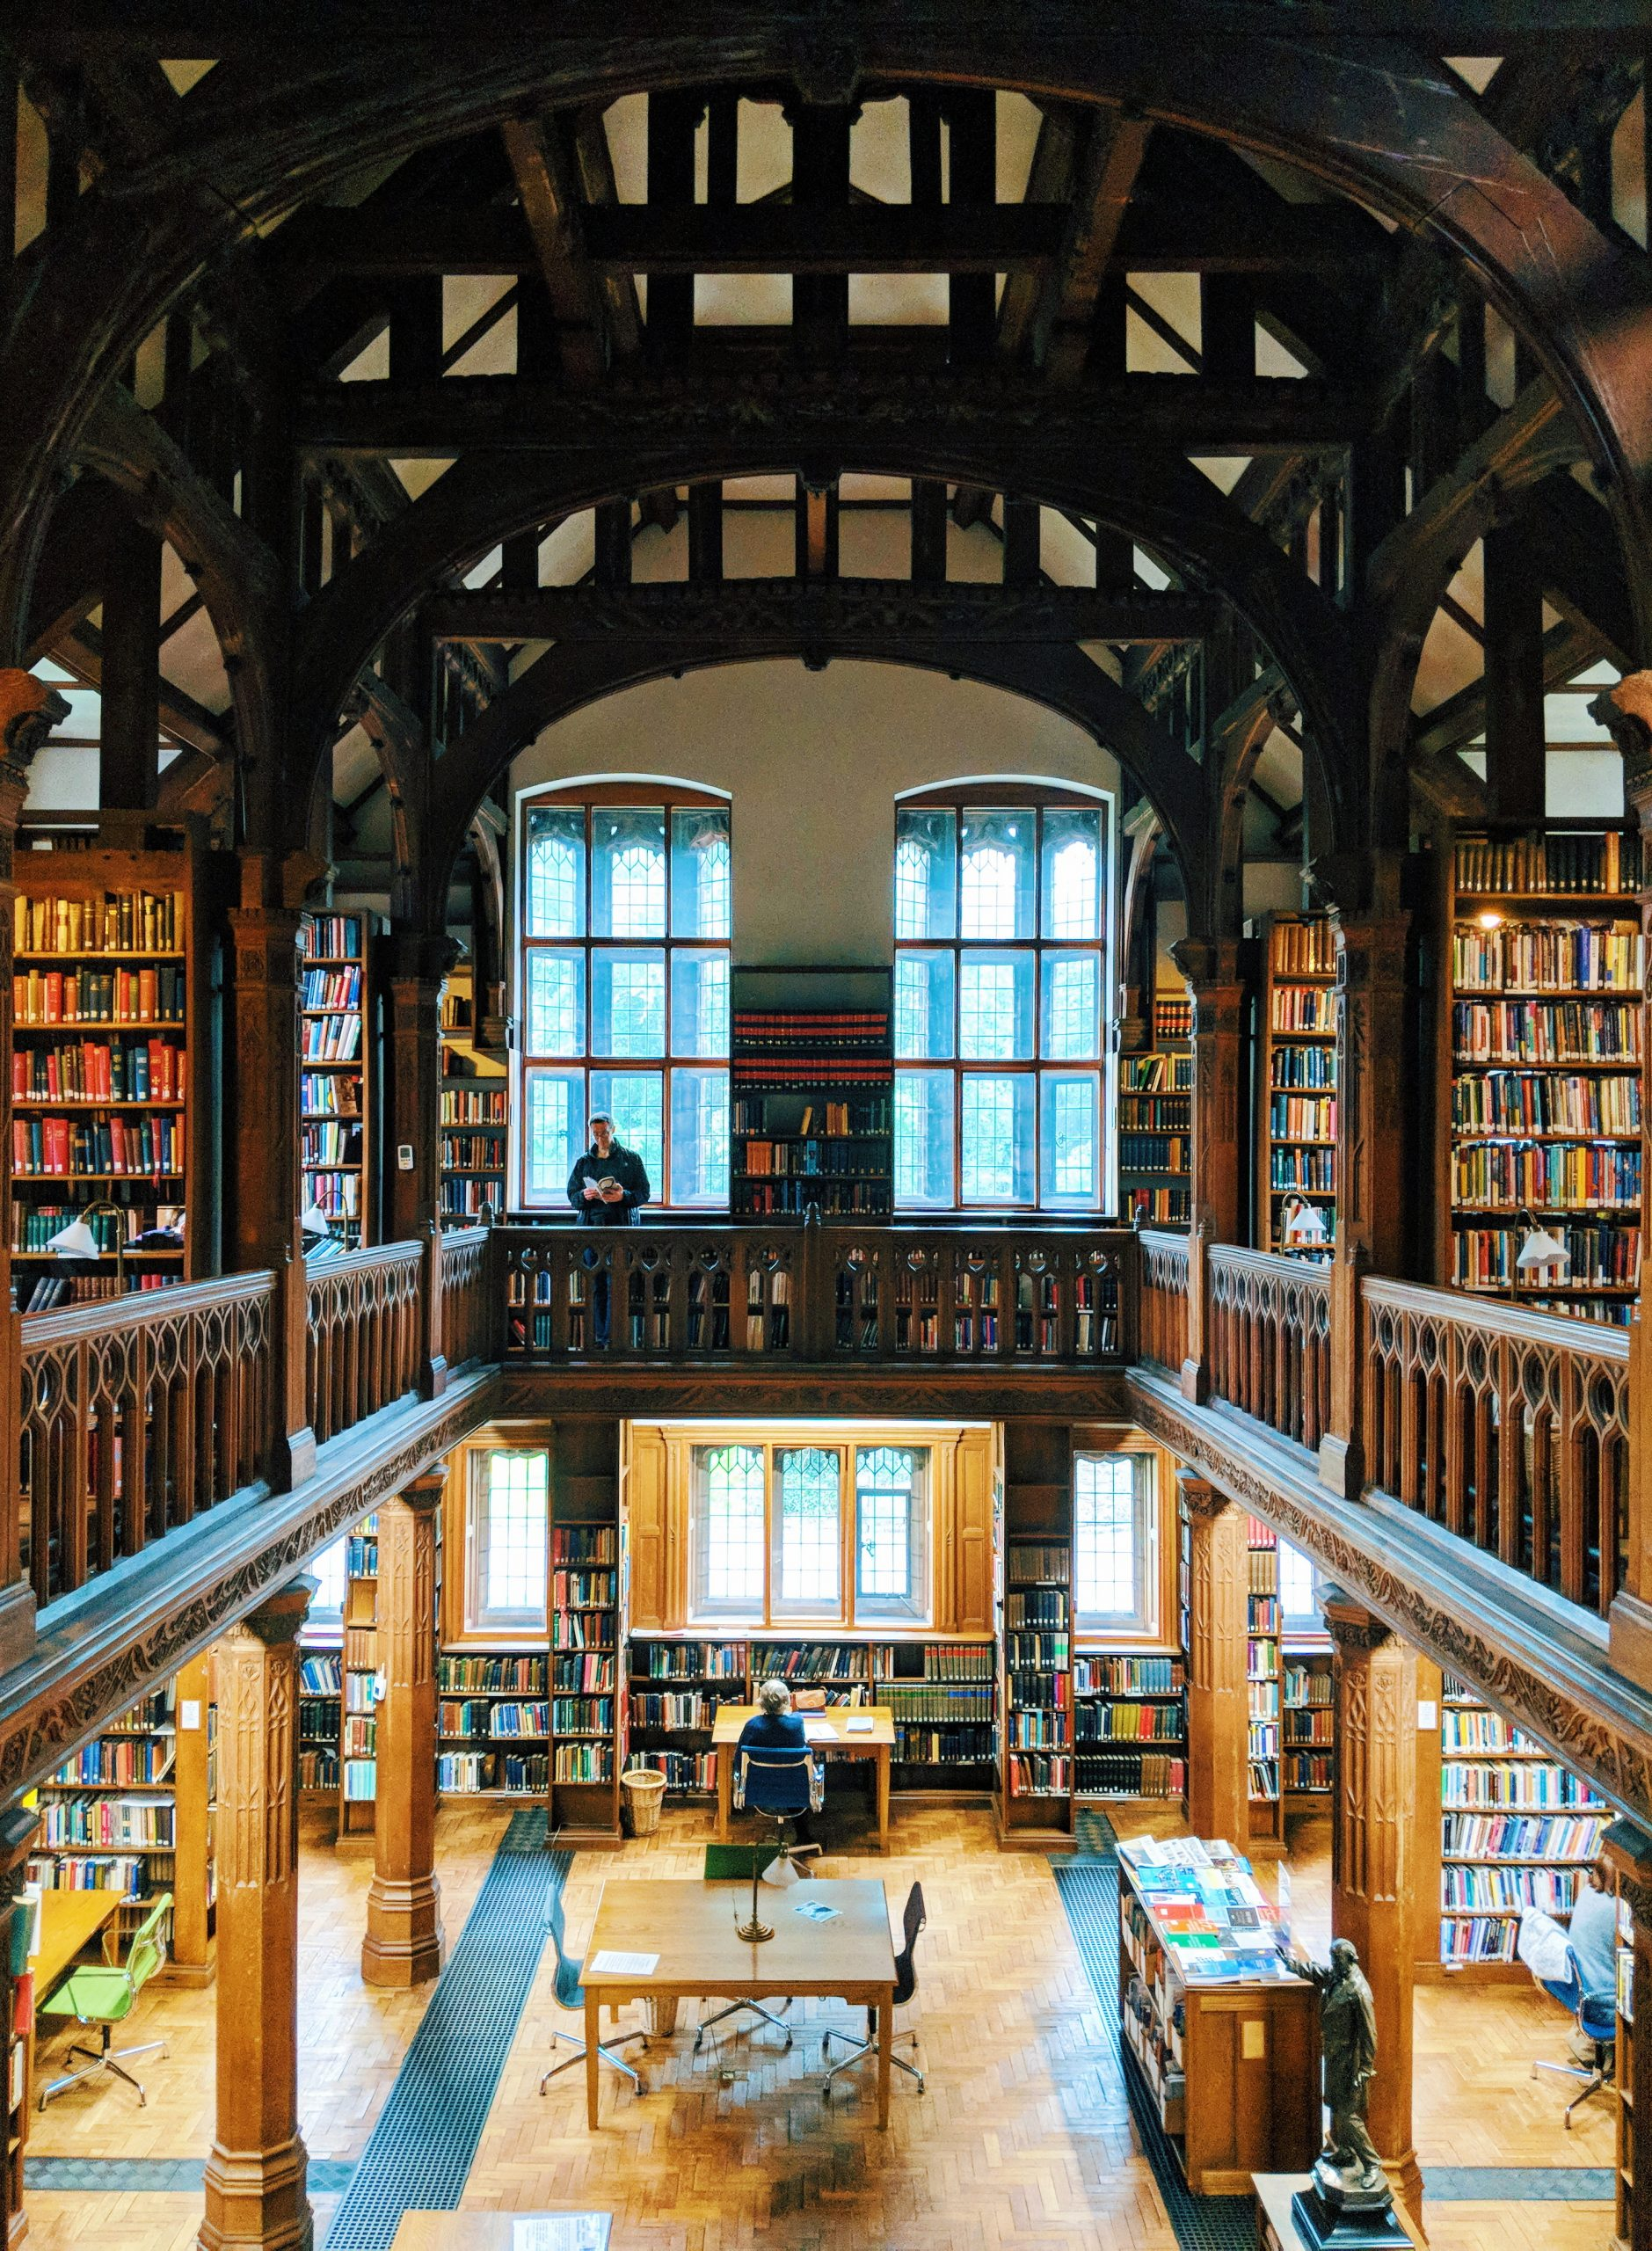 Staying Overnight at Gladstone's Library